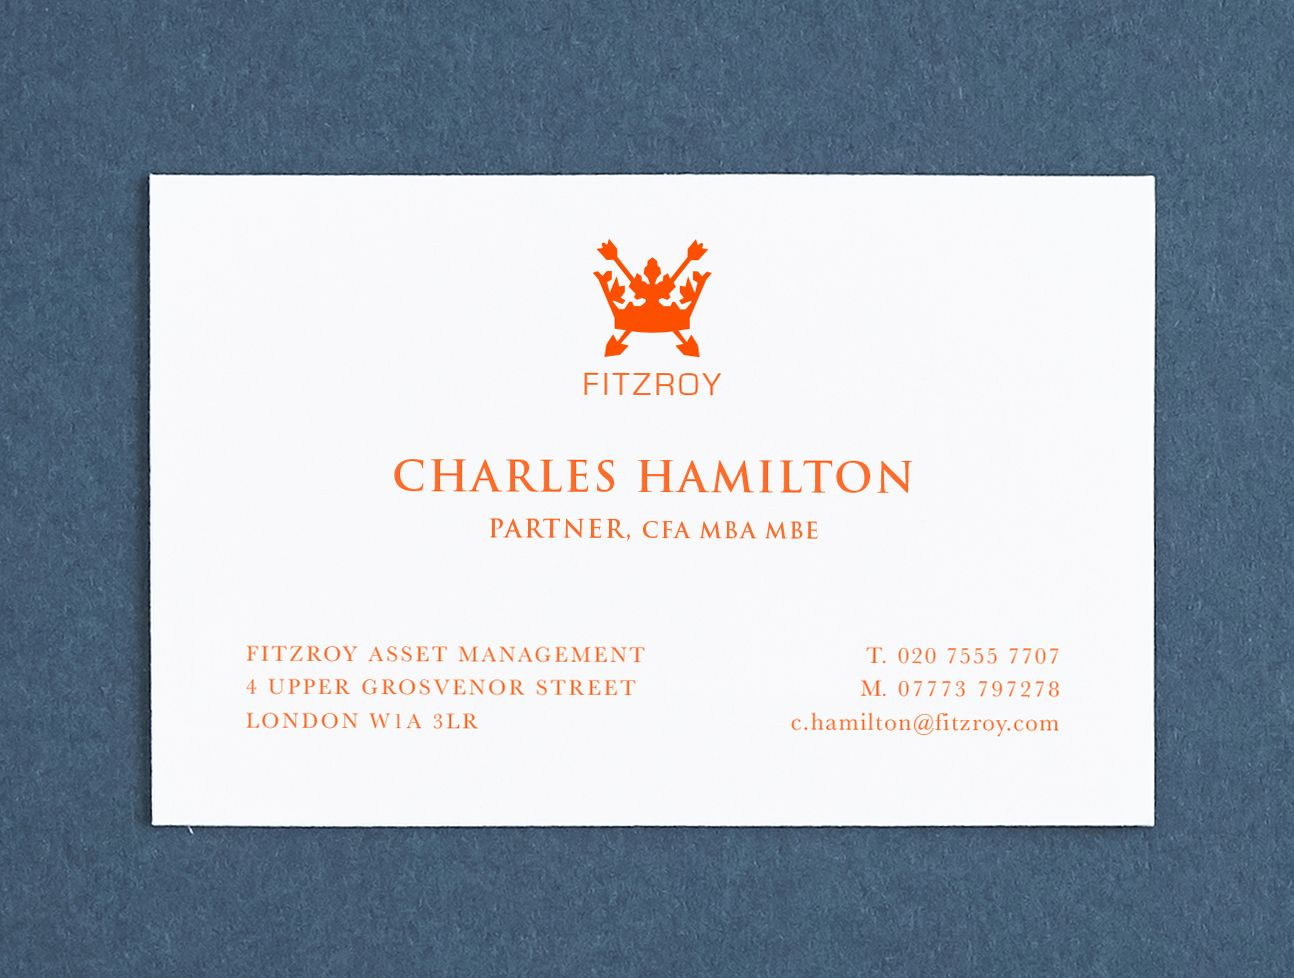 Printed Name Cards Custom Made Business Cards Personalised Etsy Make Business Cards Personal Cards Business Stationery